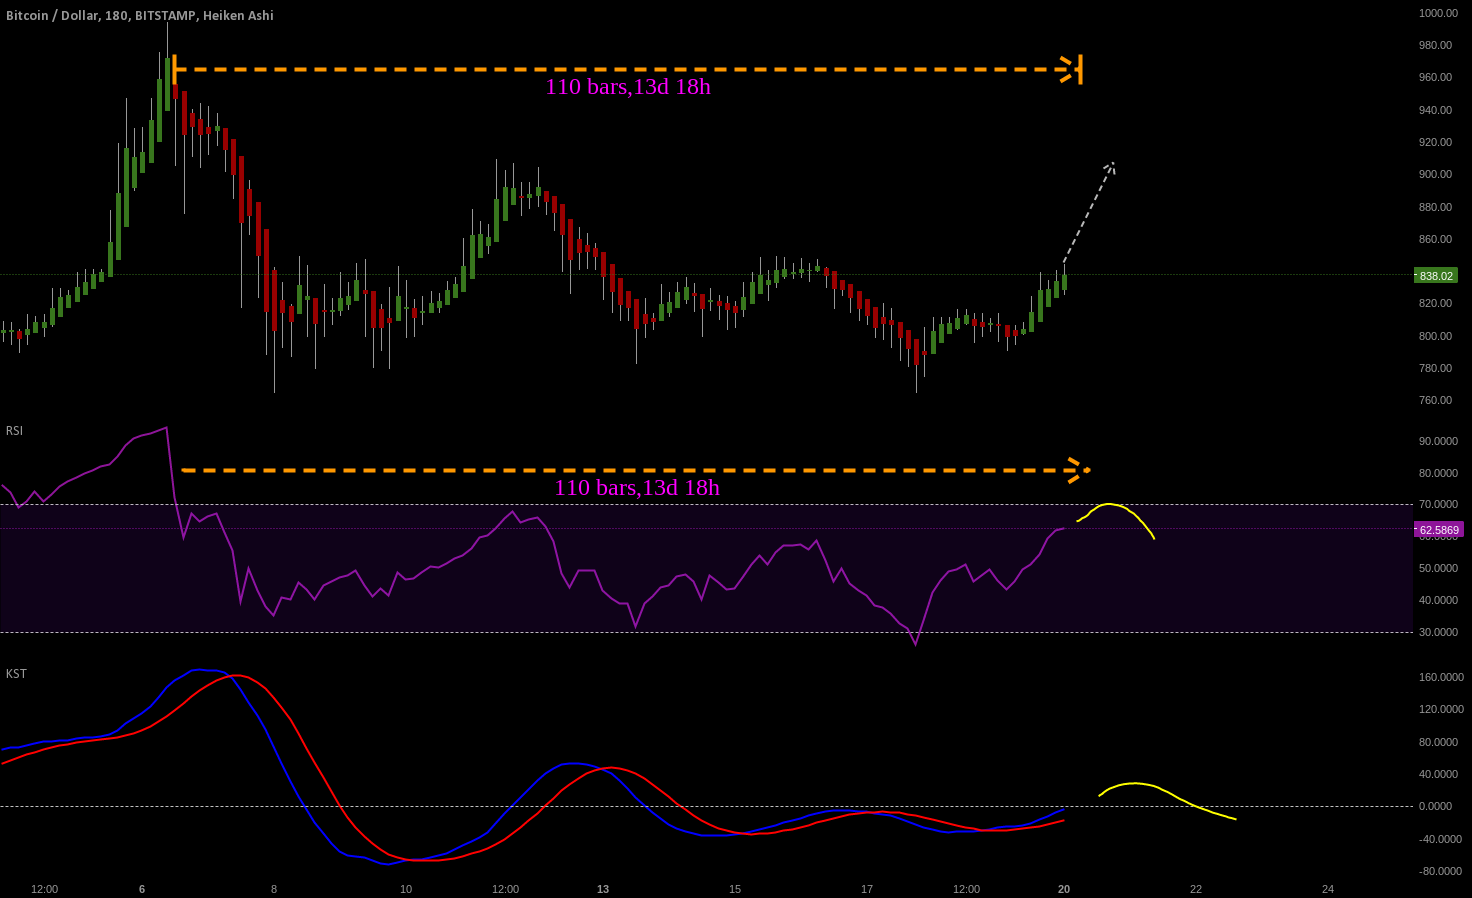 RSI REACHING RESISTANCE AREAS